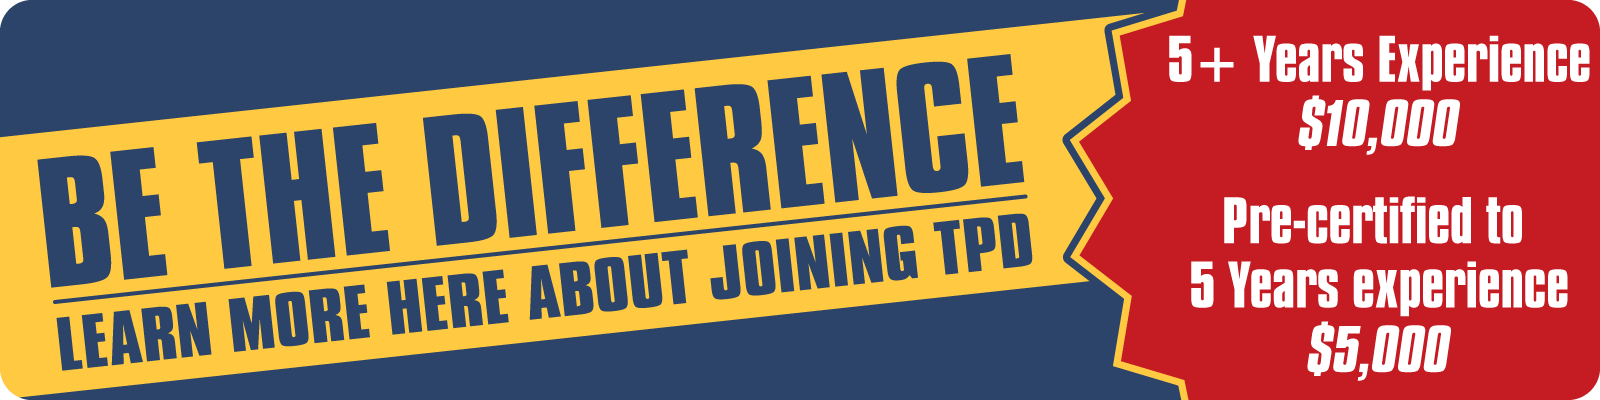 Be the Difference! Learn more about Joining TPD Today.